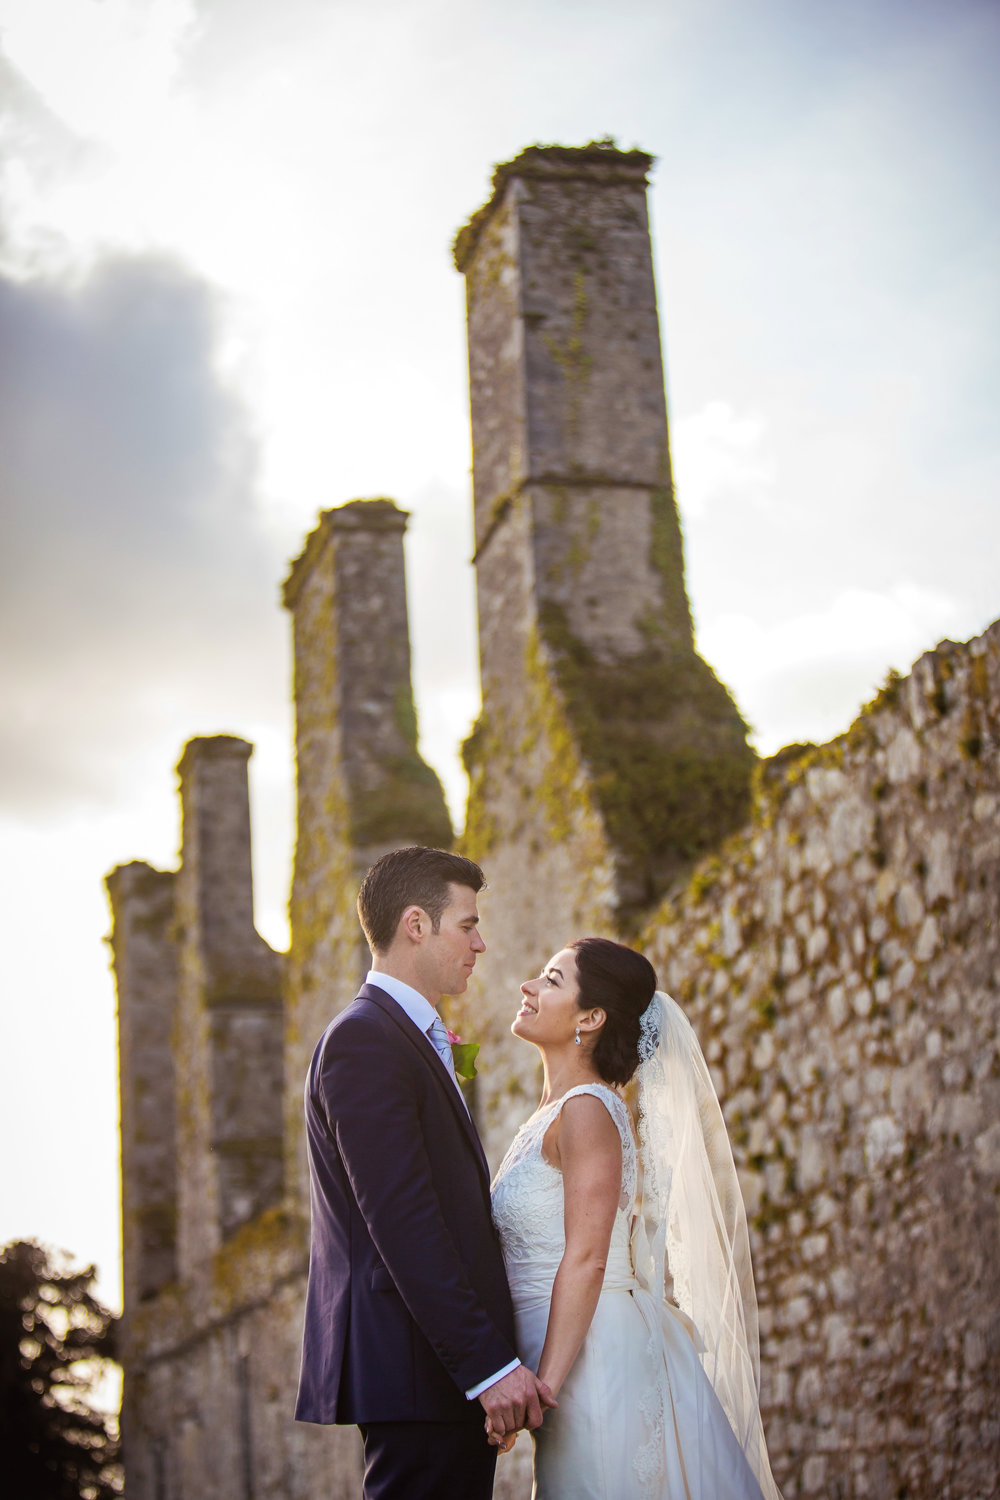 Casey Photography - Cork Kerry Ireland Wedding-1047.jpg